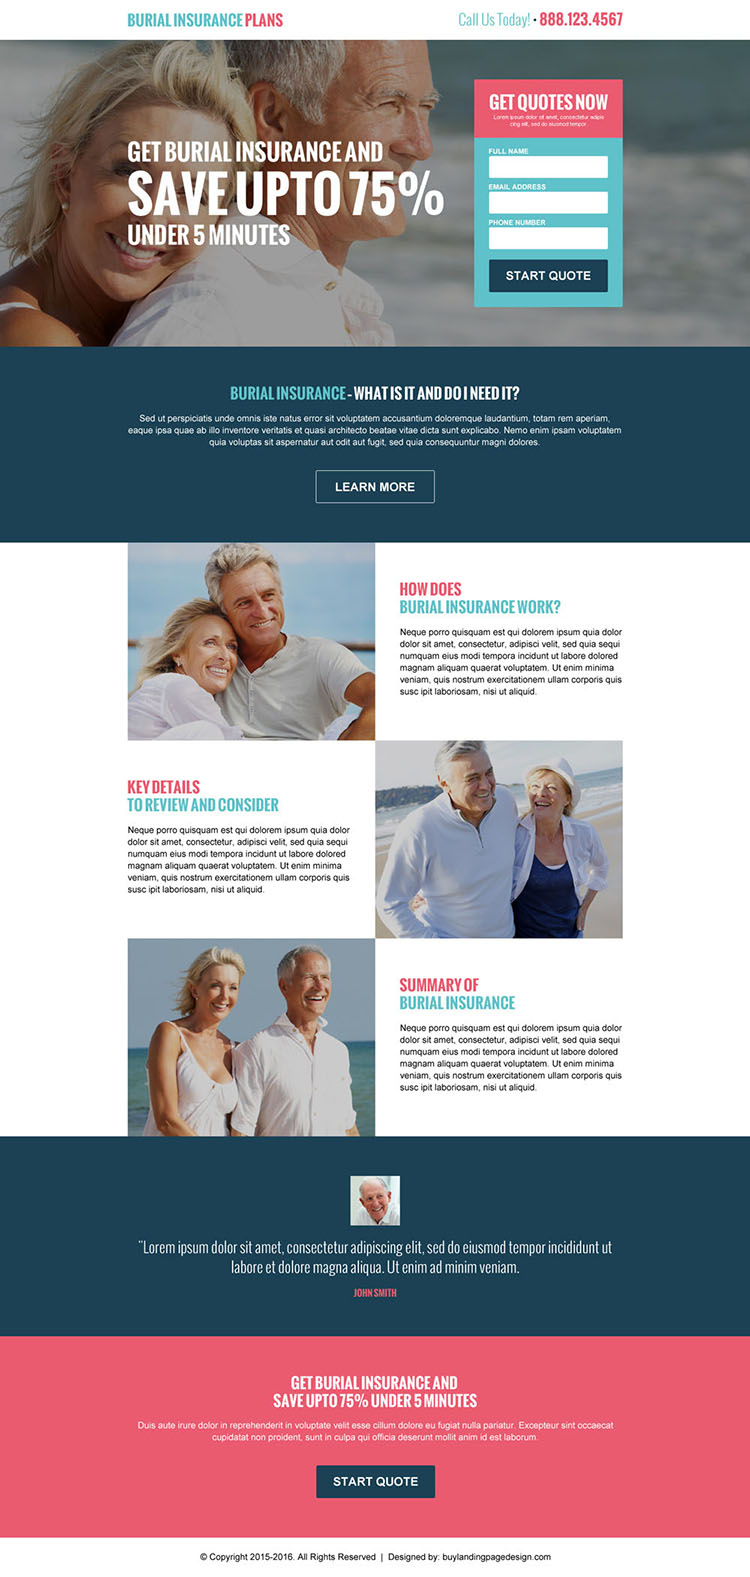 converting burial insurance plans landing page design